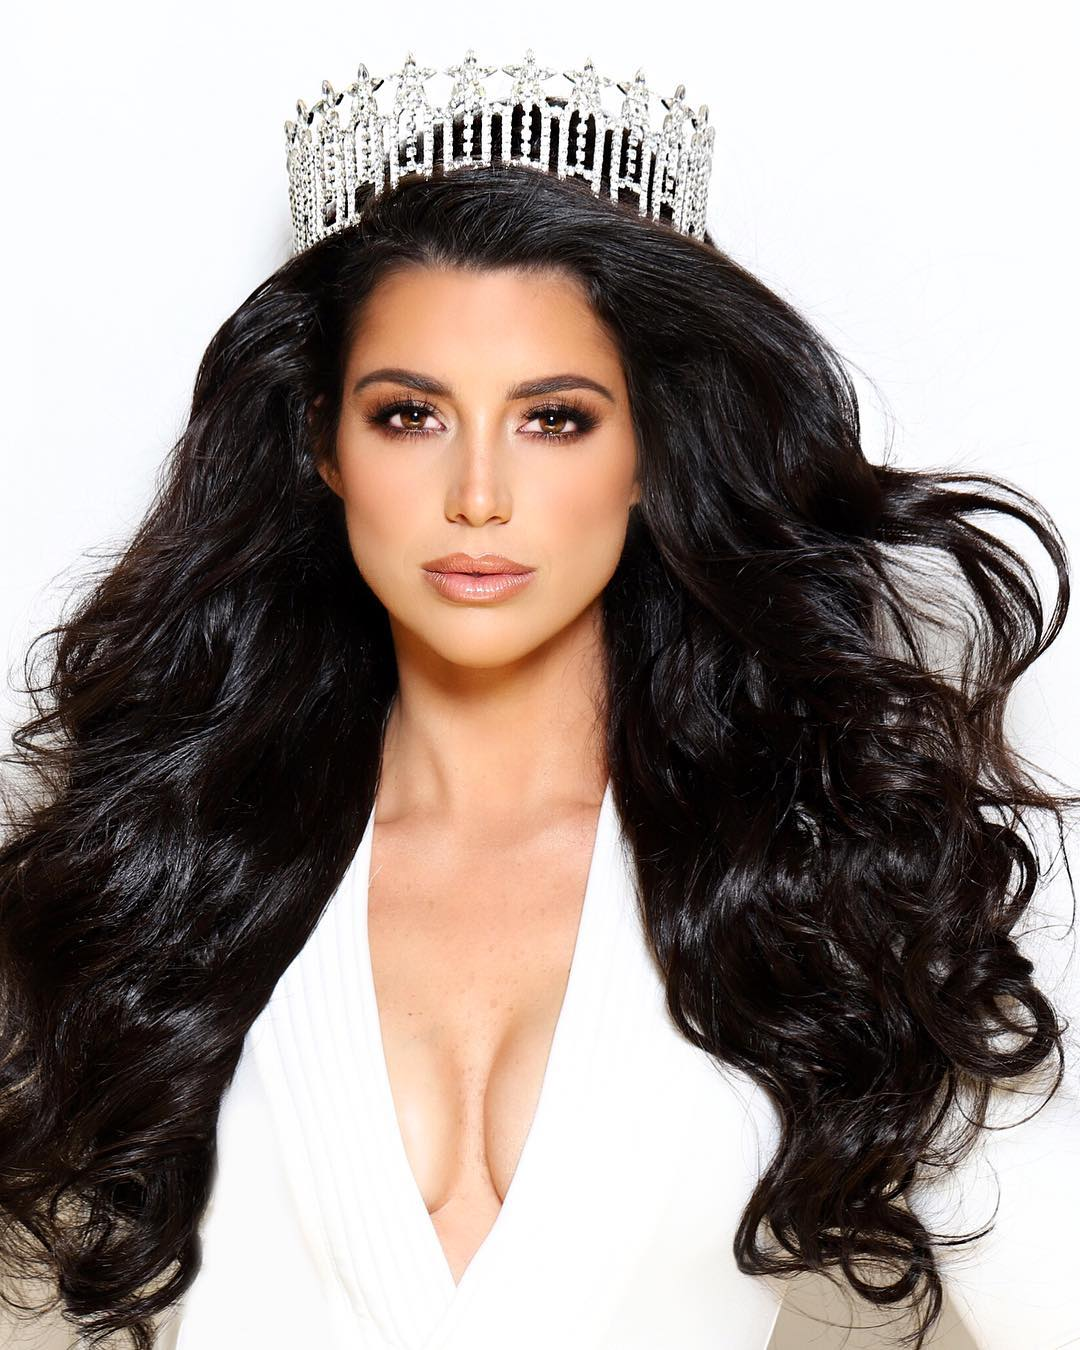 candidatas a miss usa 2019. final: 2 may. - Página 8 Qeobzey6